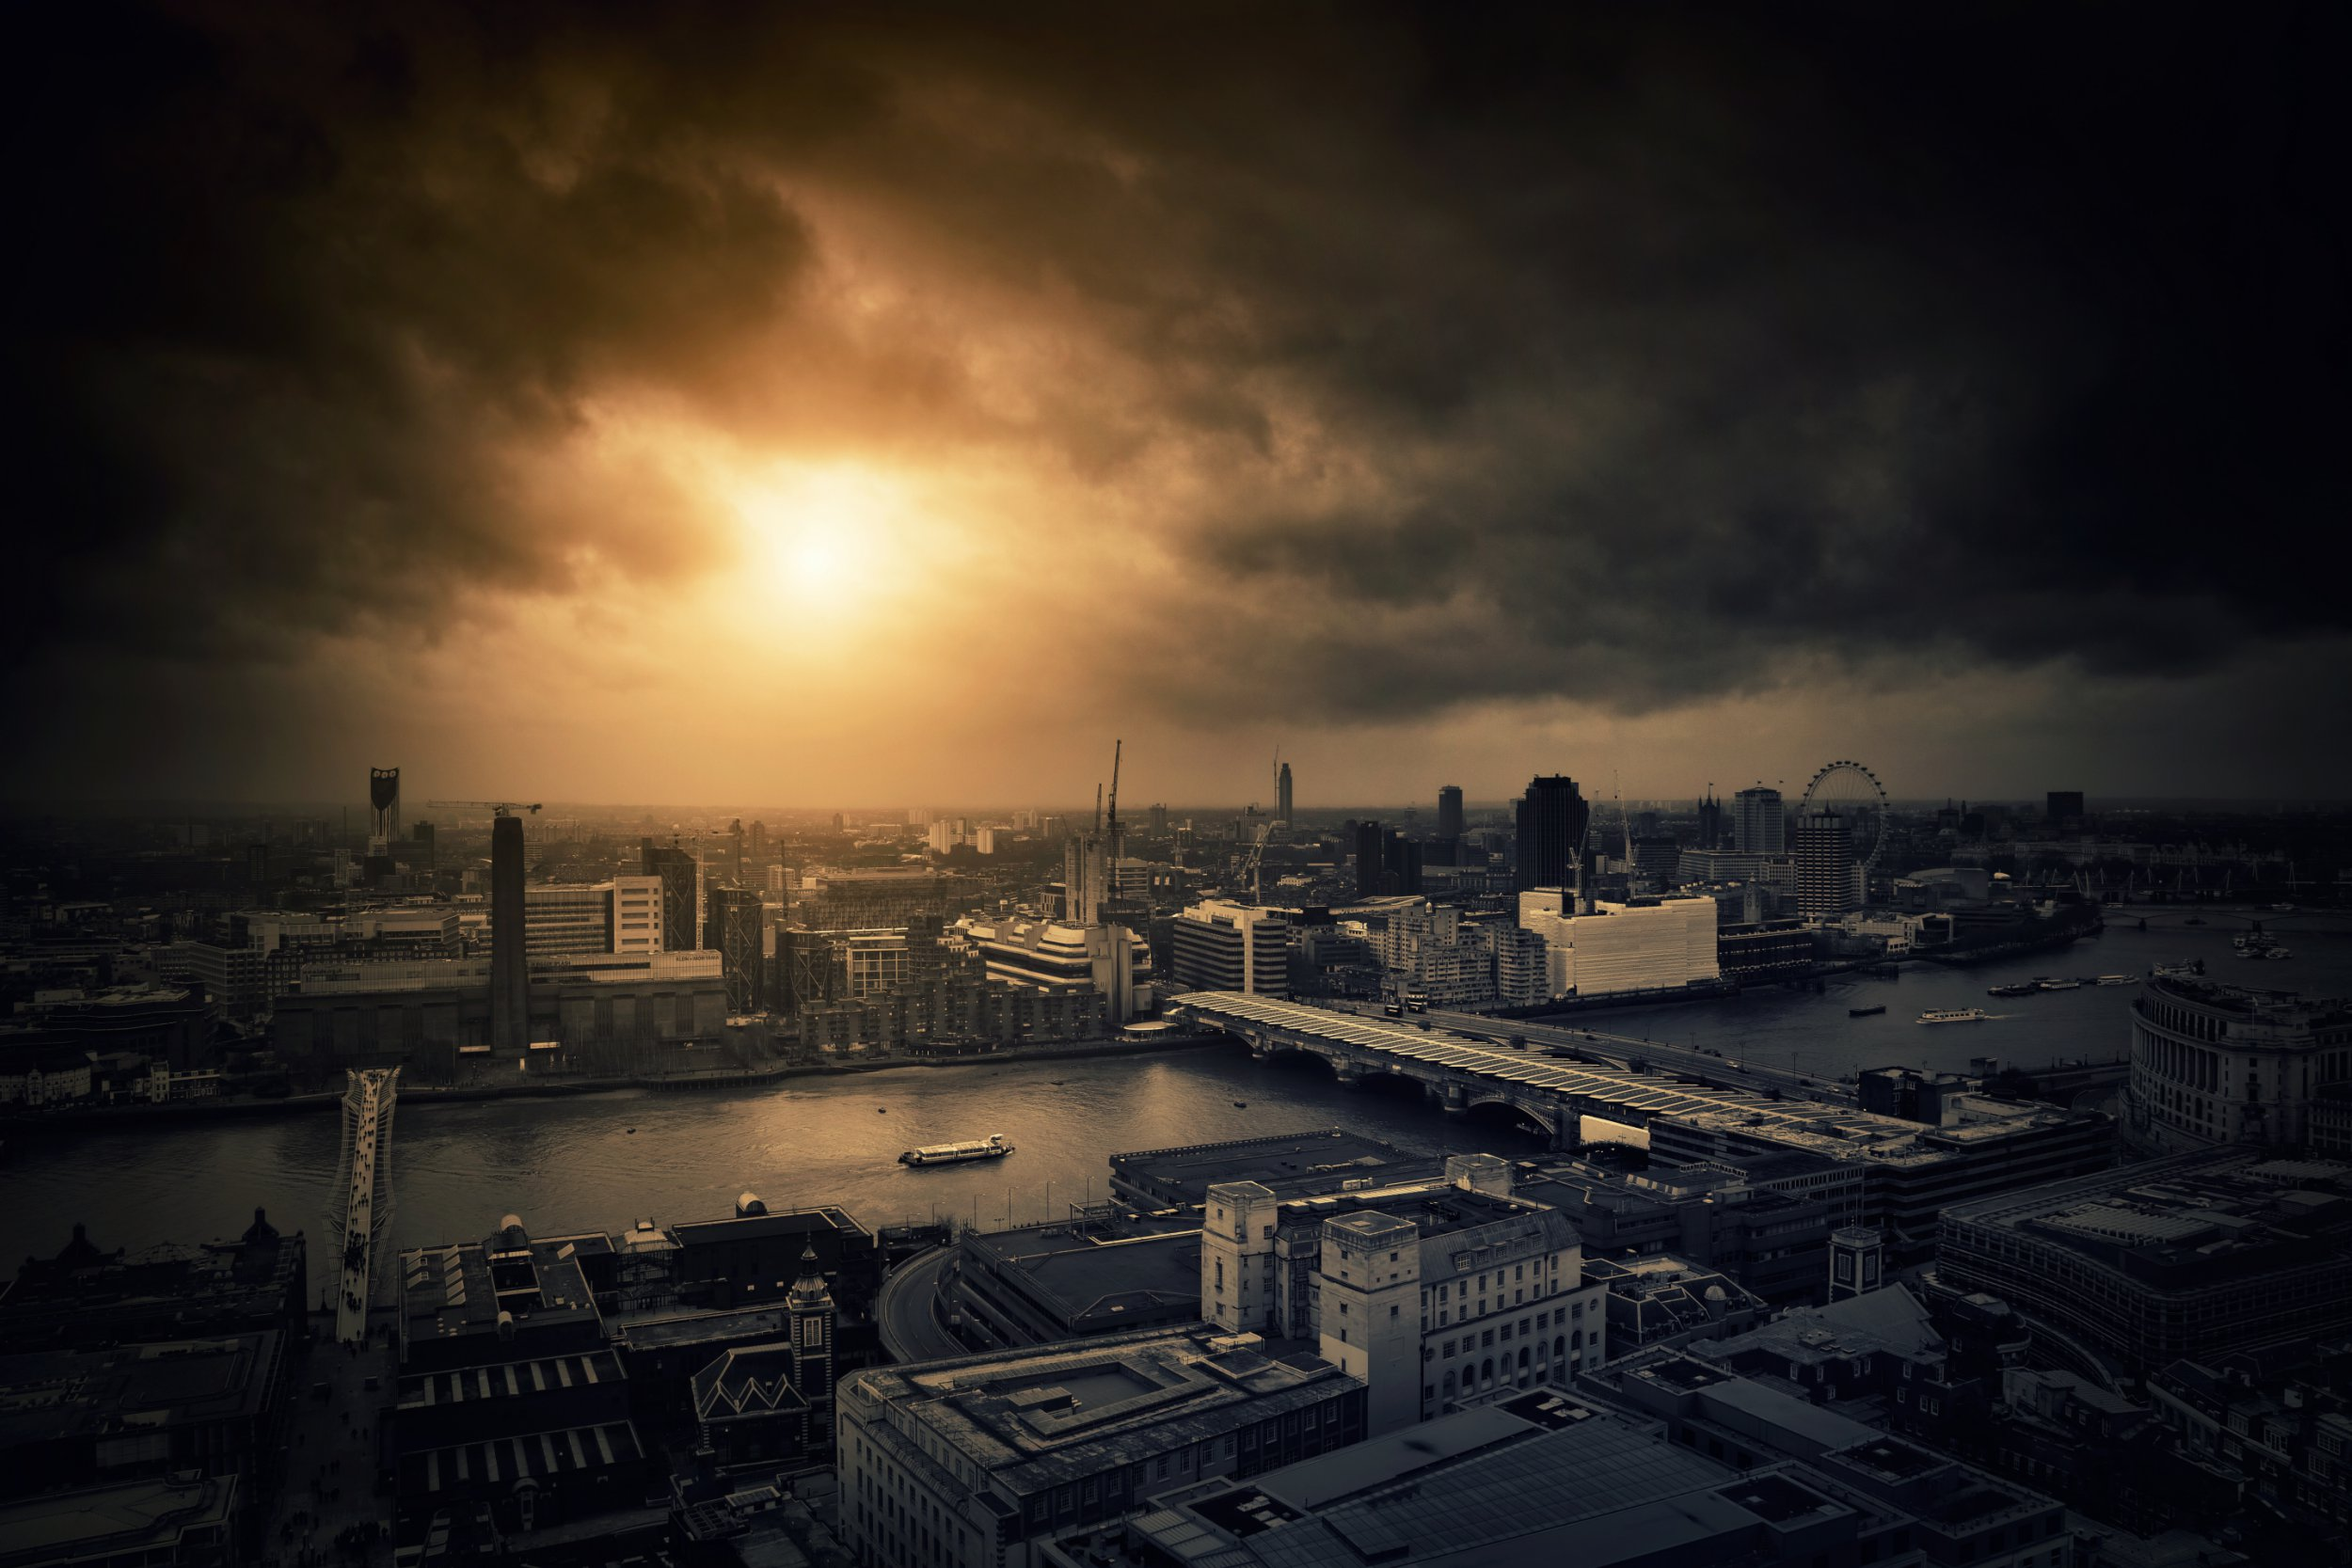 The view from St. Paul's church, London, UK.